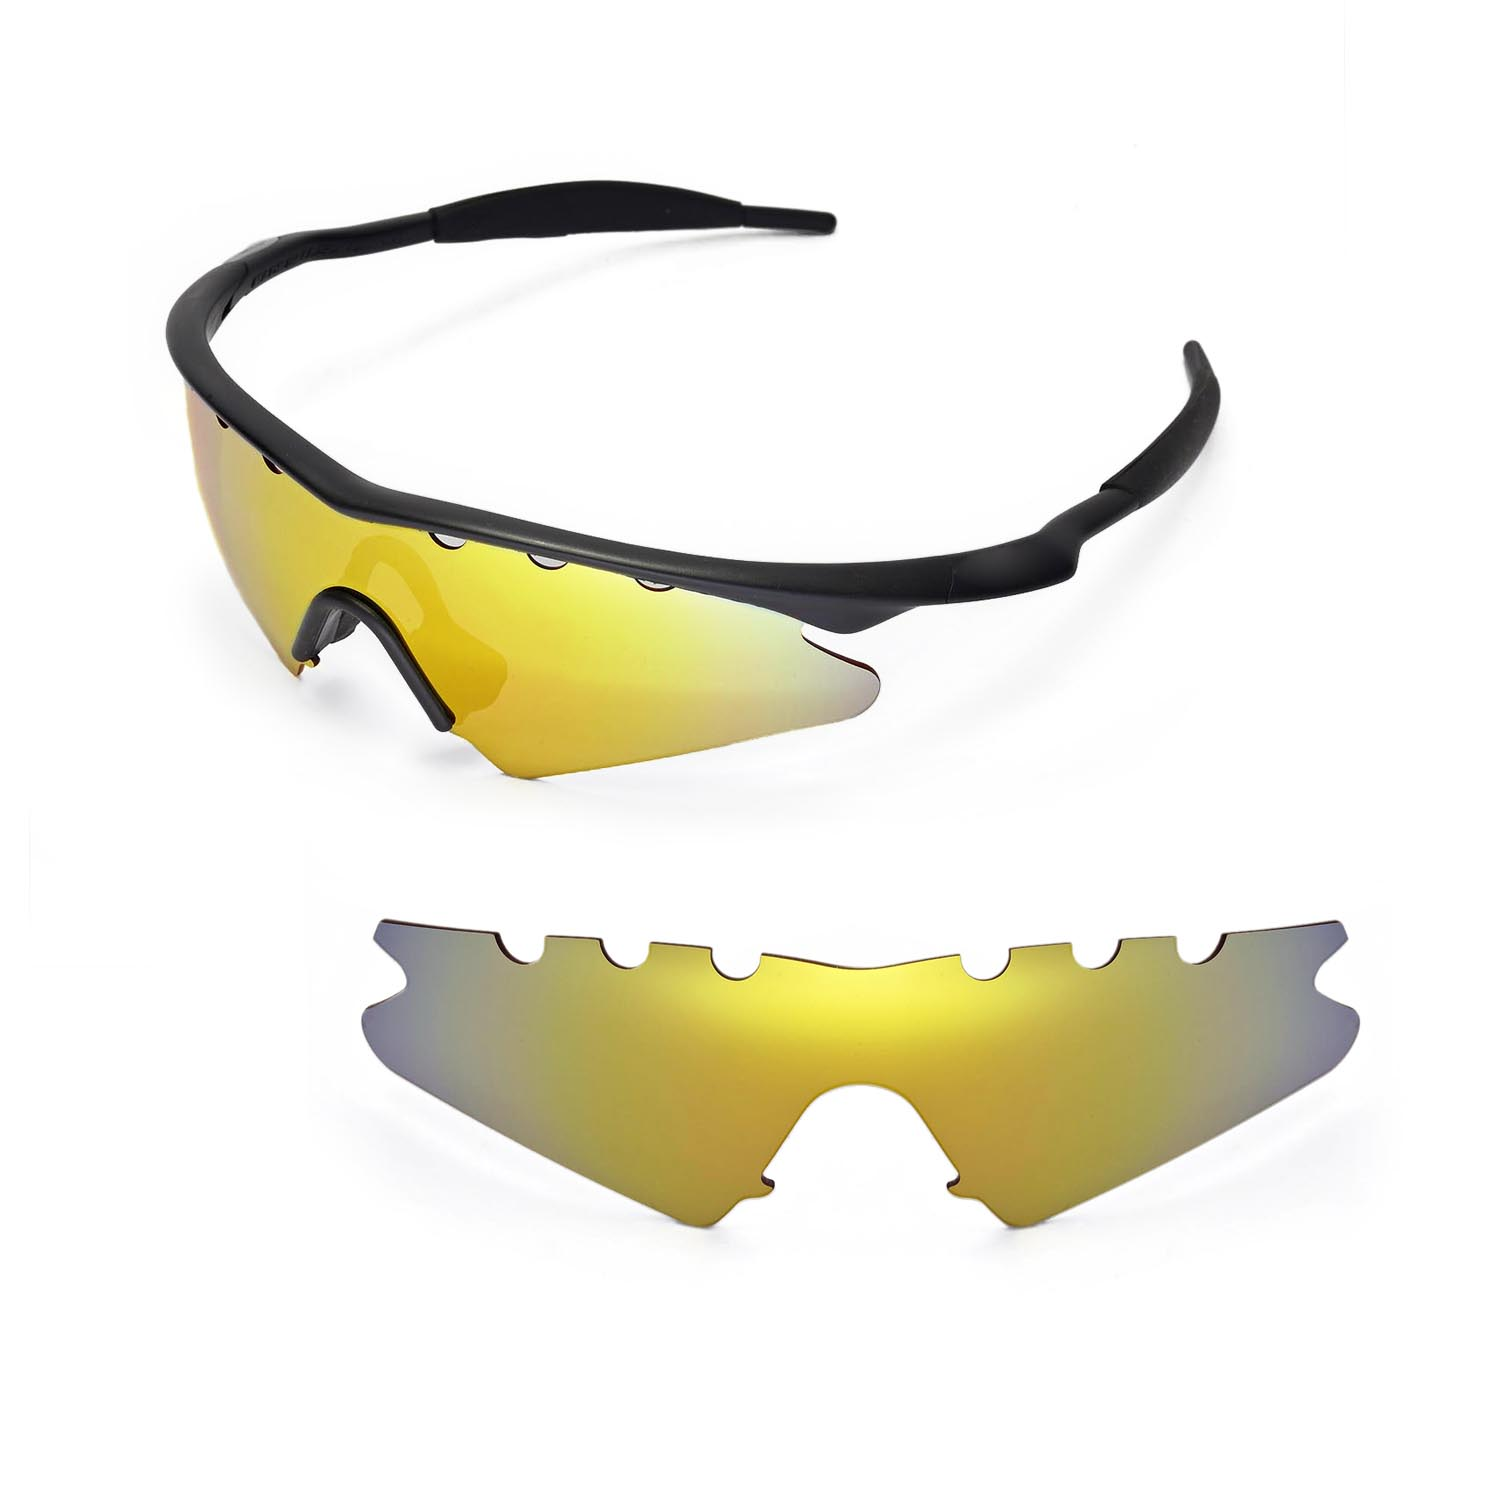 758b2c4dcf5 Details about New WL Polarized 24K Gold Vented Replacement Lenses for  Oakley M Frame Sweep